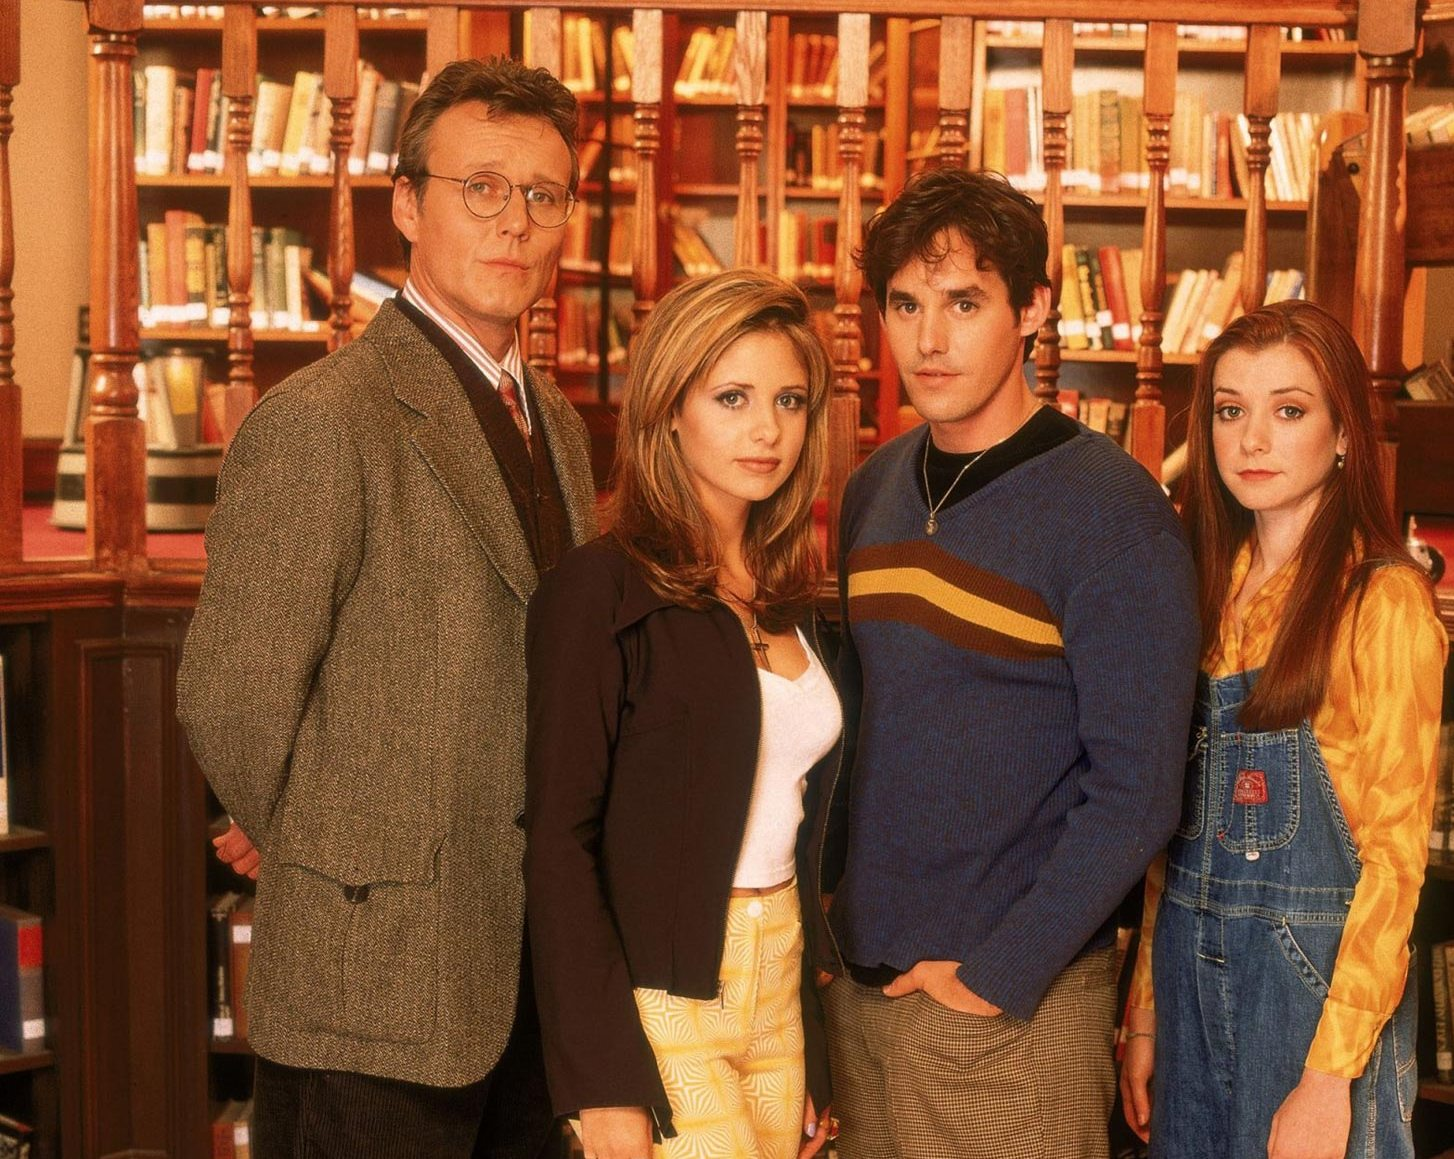 TV SHOWS – Your All Time Top 10 | Ezra Magazine